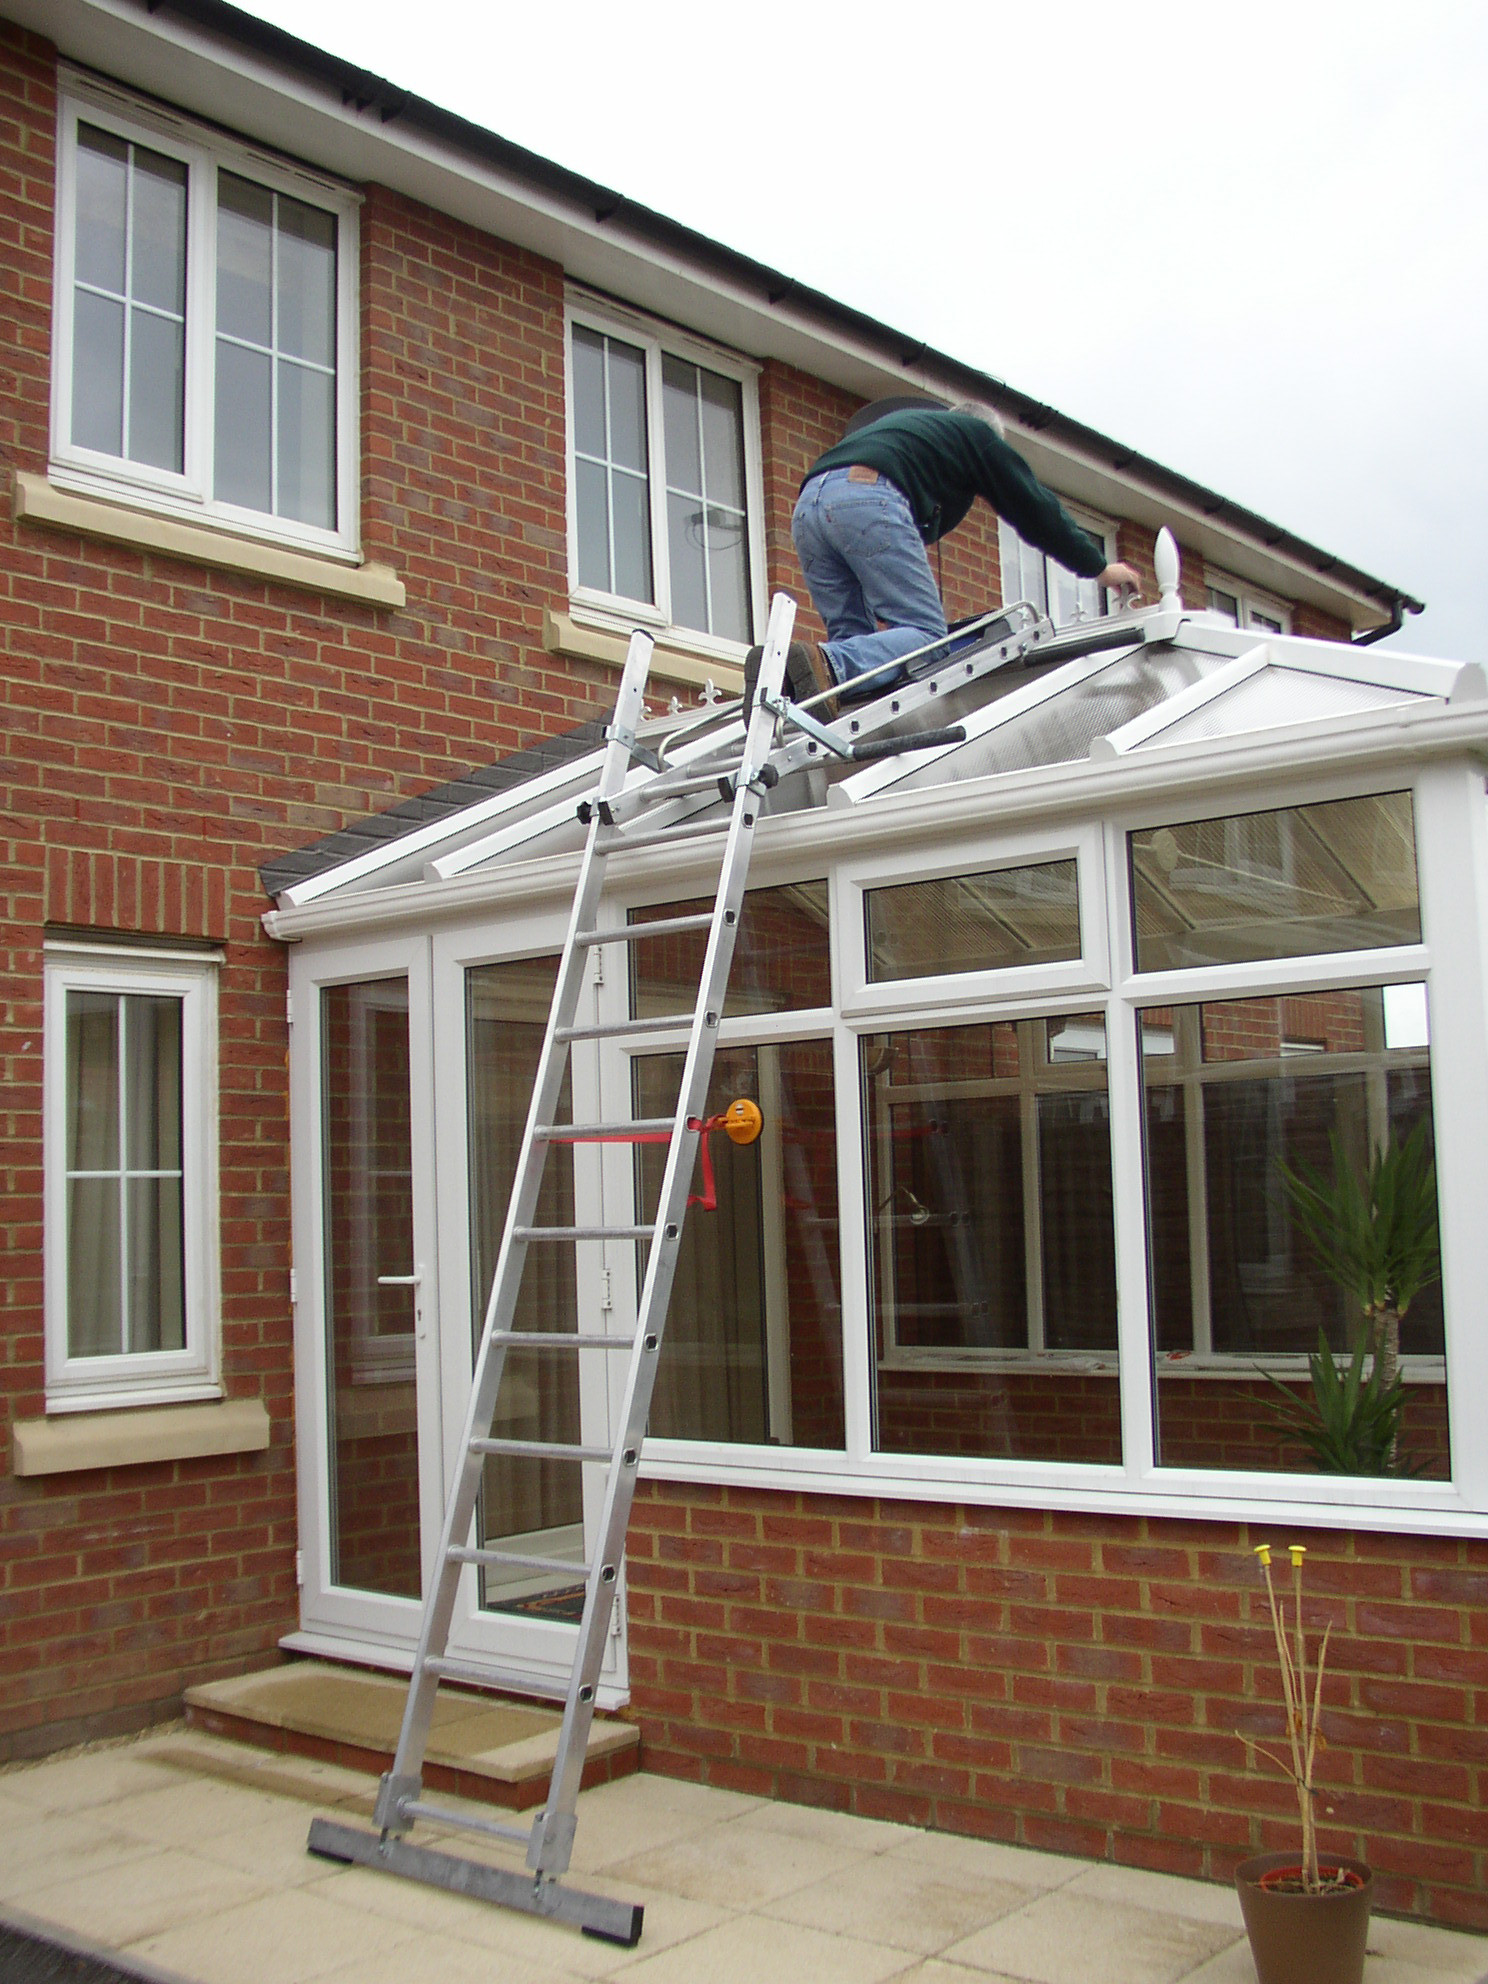 Easi Dec Conservatory Roof Access System Simplified Safety